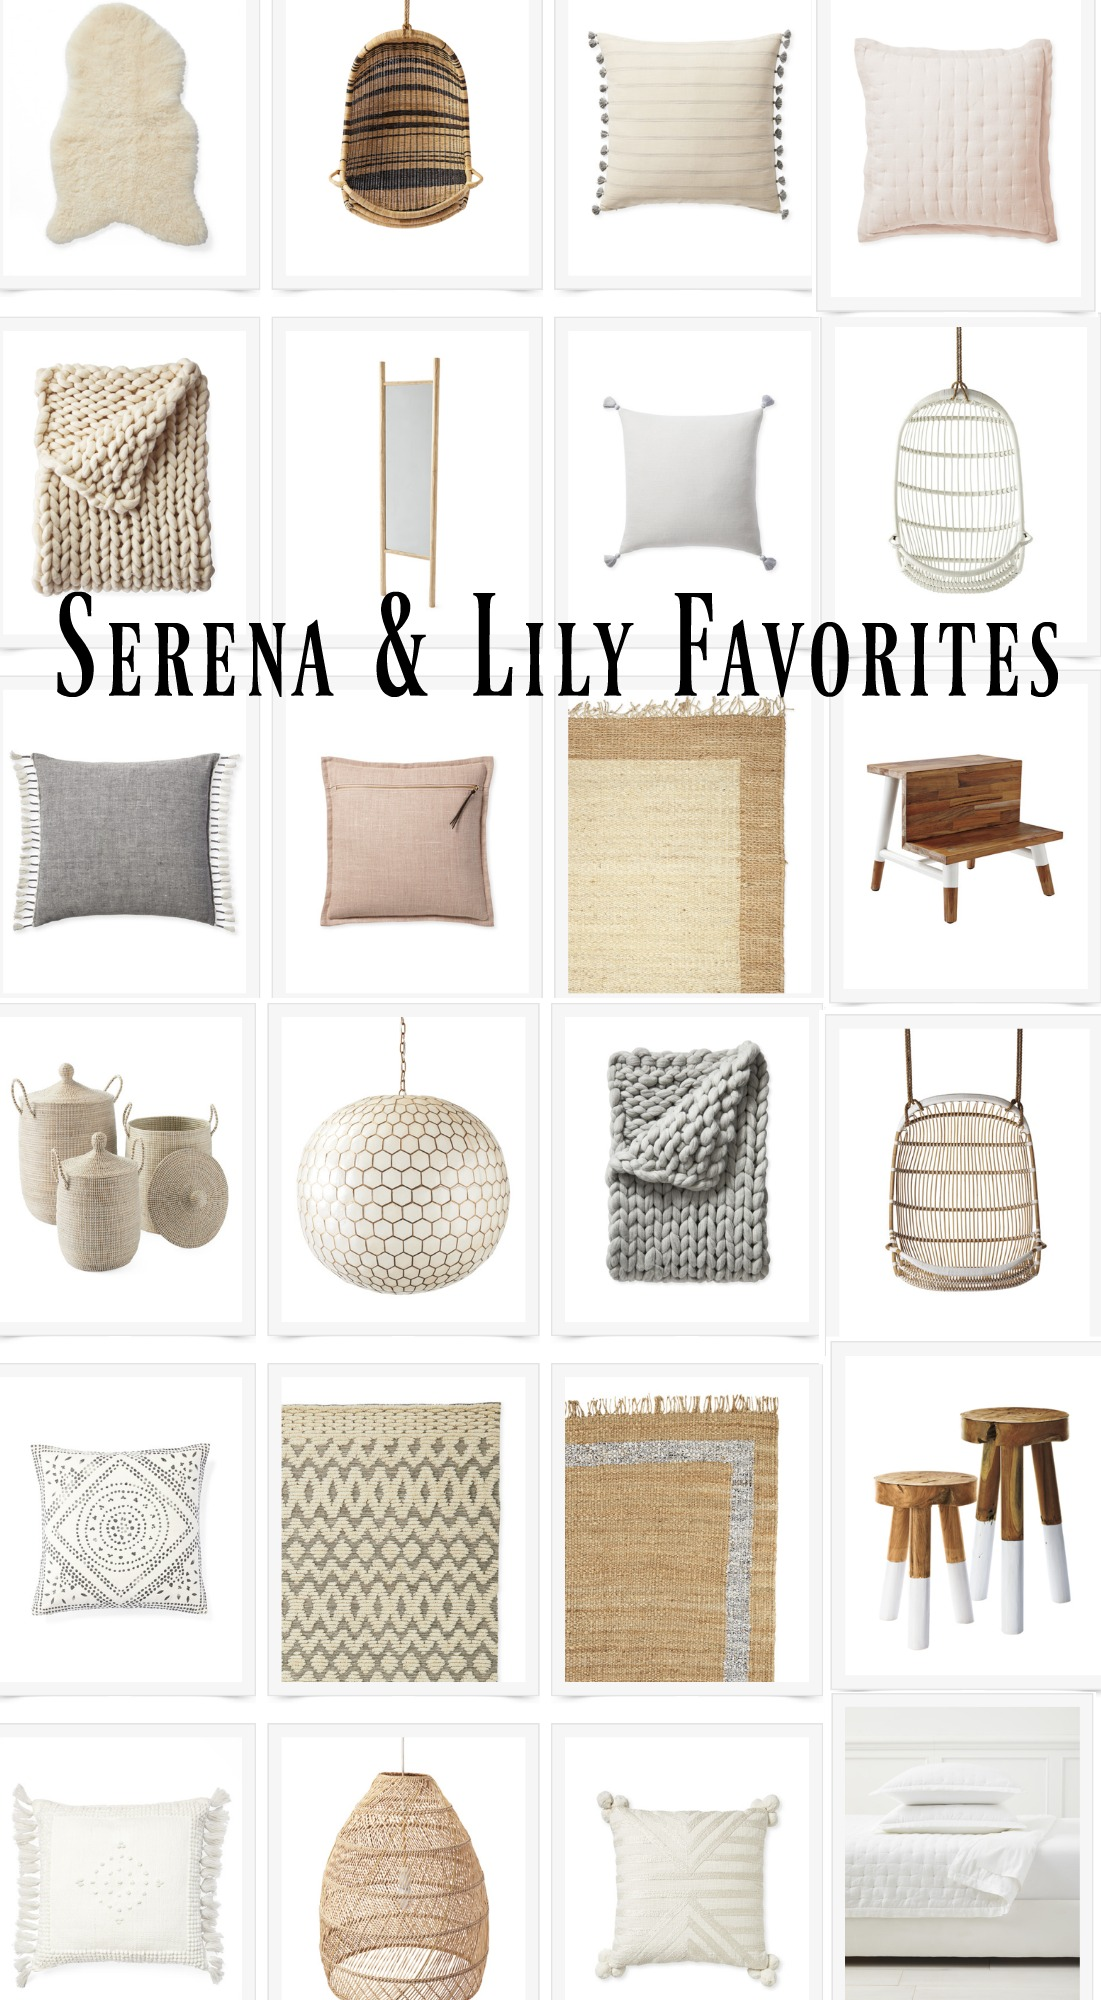 Favorite Place to find Home Decor